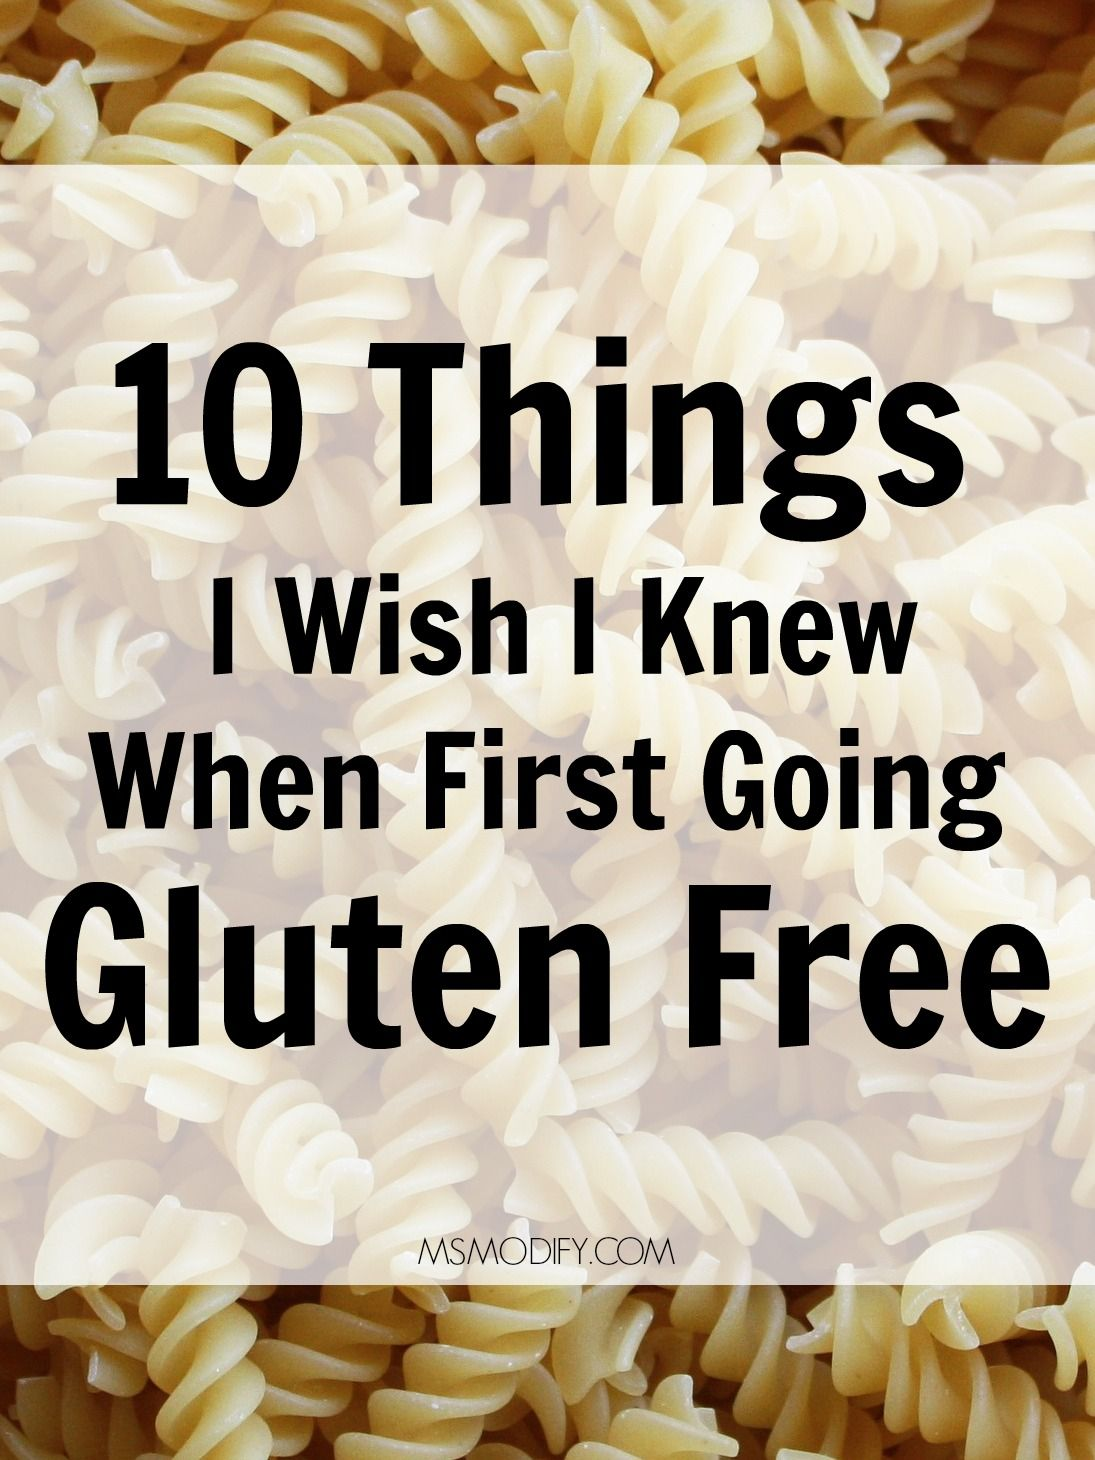 10 Things I Wish I Knew When First Going Gluten Free 10 Things I Wish I Knew When First Going Gluten Free